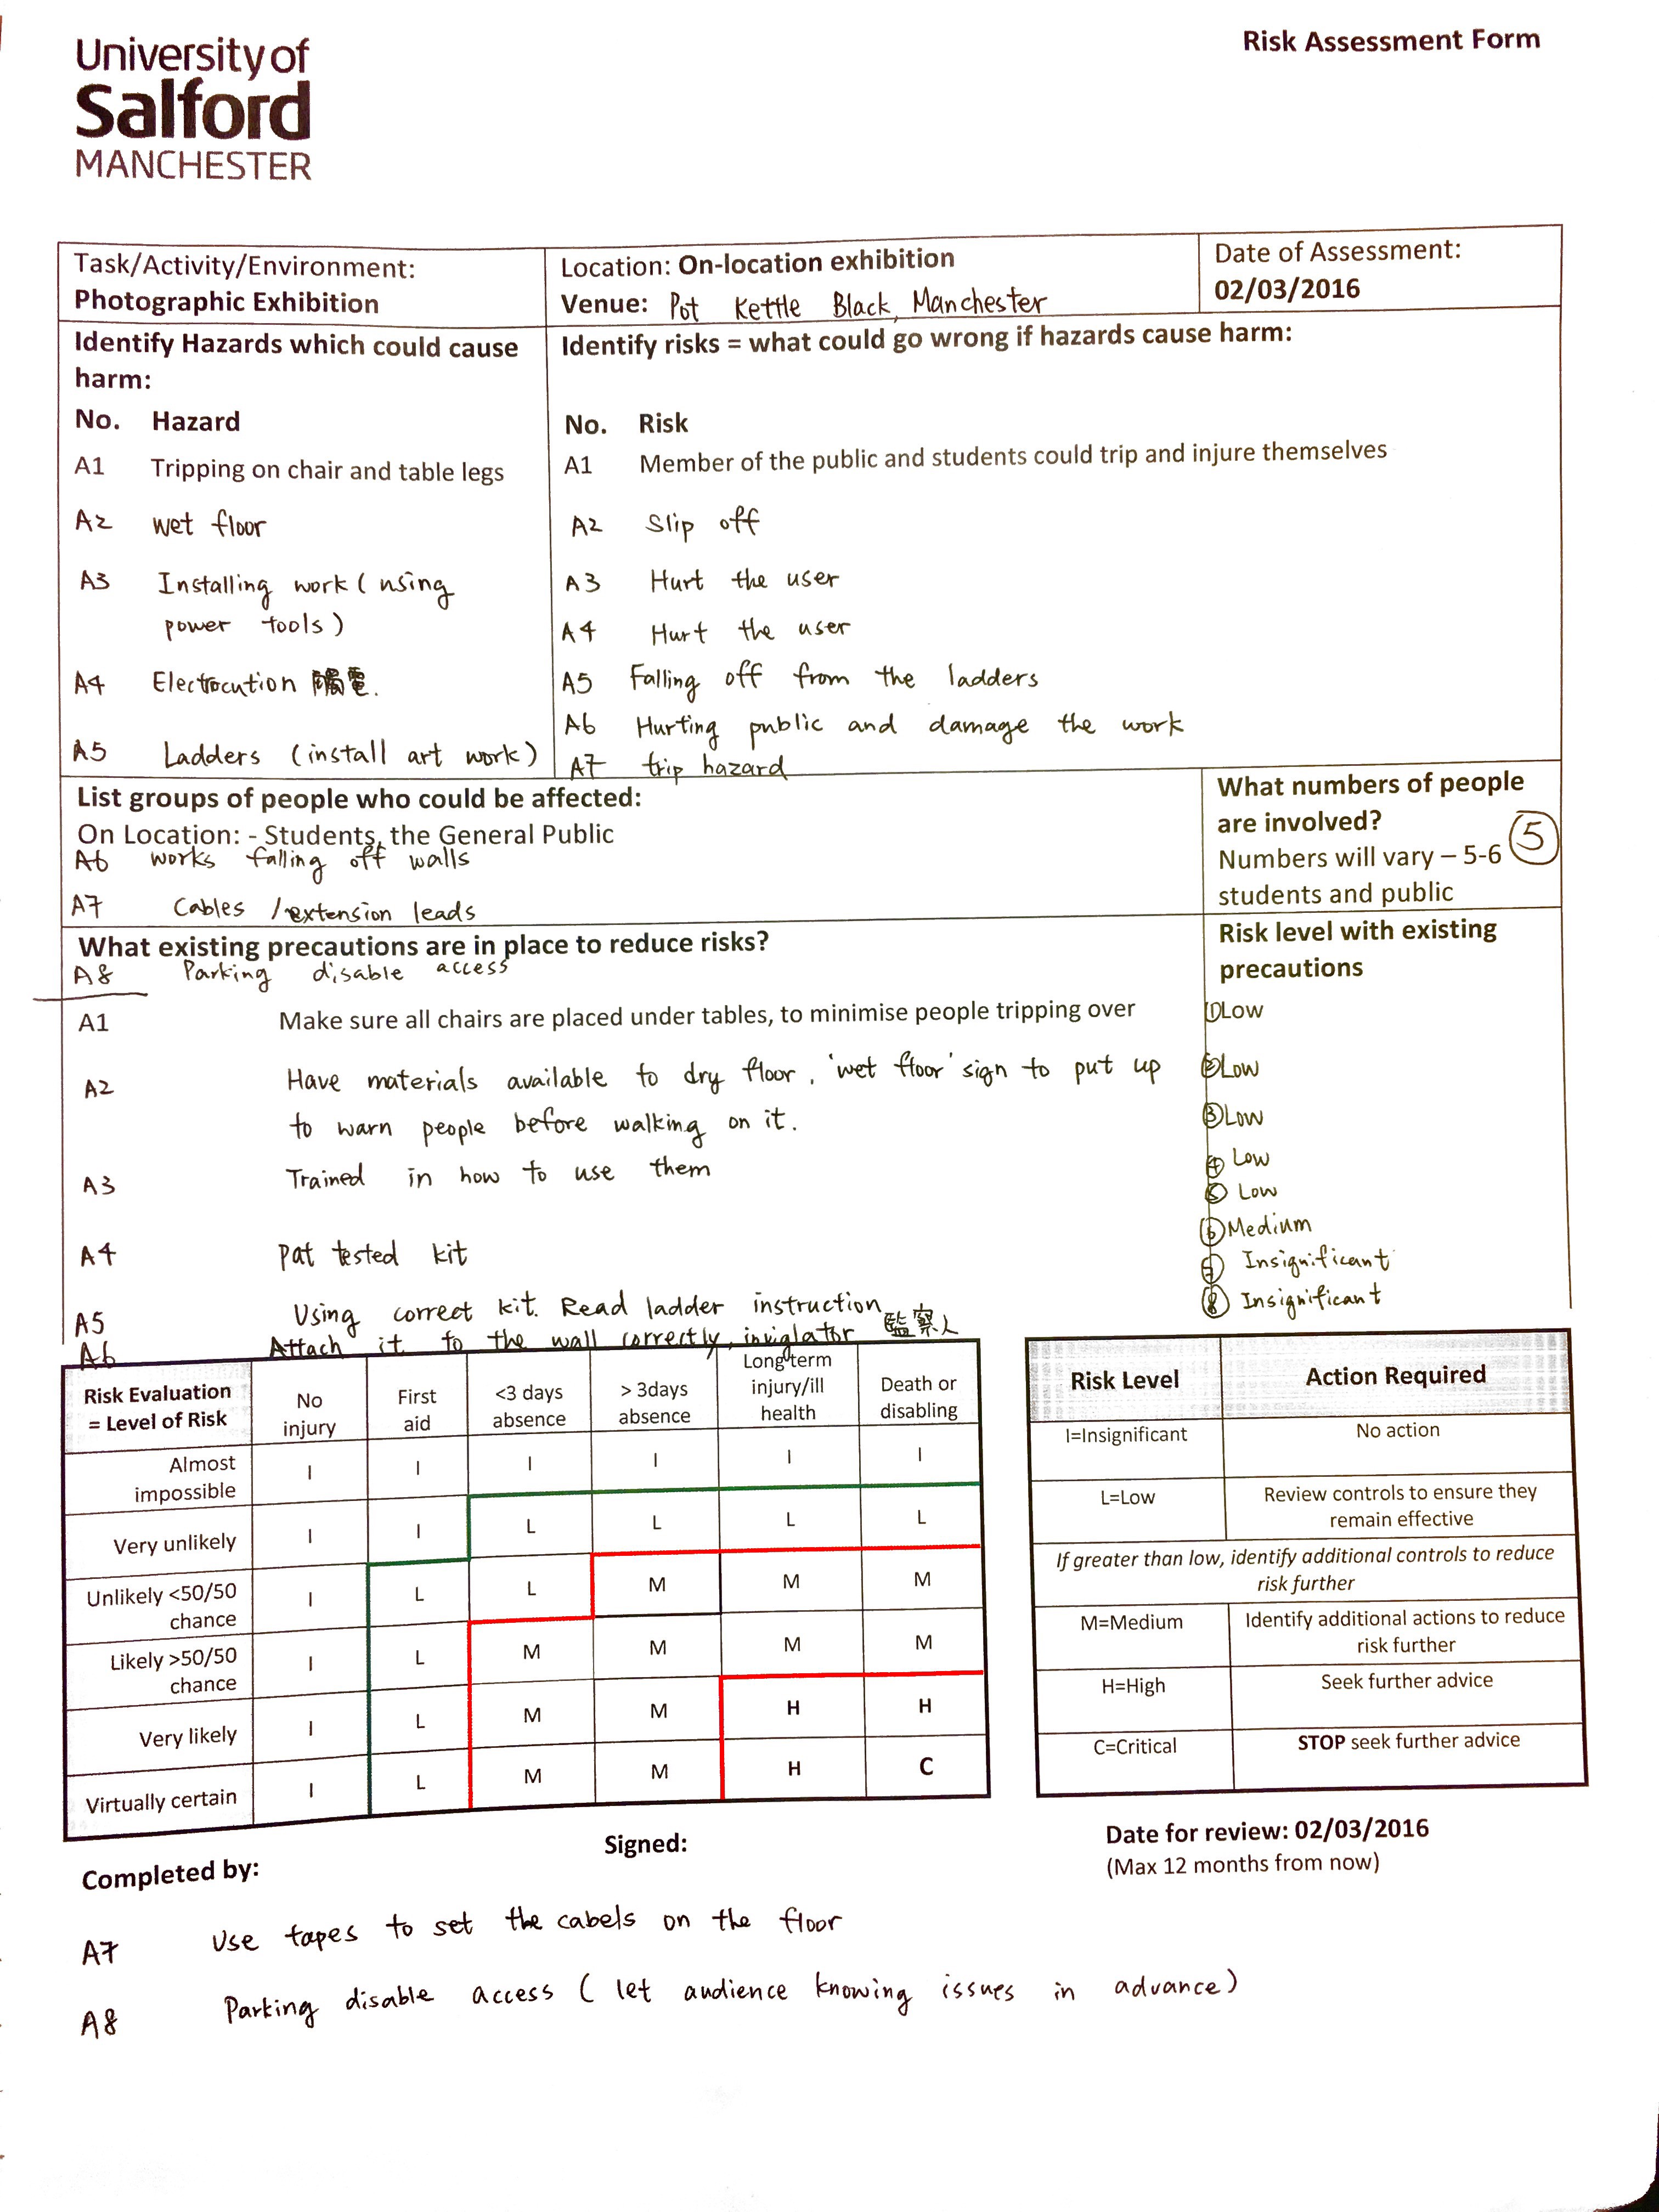 Risk Assessment Form By Karen Chhui Medium Managing risk assessment 5.1 establishing a risk assessment programme 5.2 identifying work areas 5.3 a form on which to record the significant findings of the risk assessment in a more. risk assessment form by karen chhui